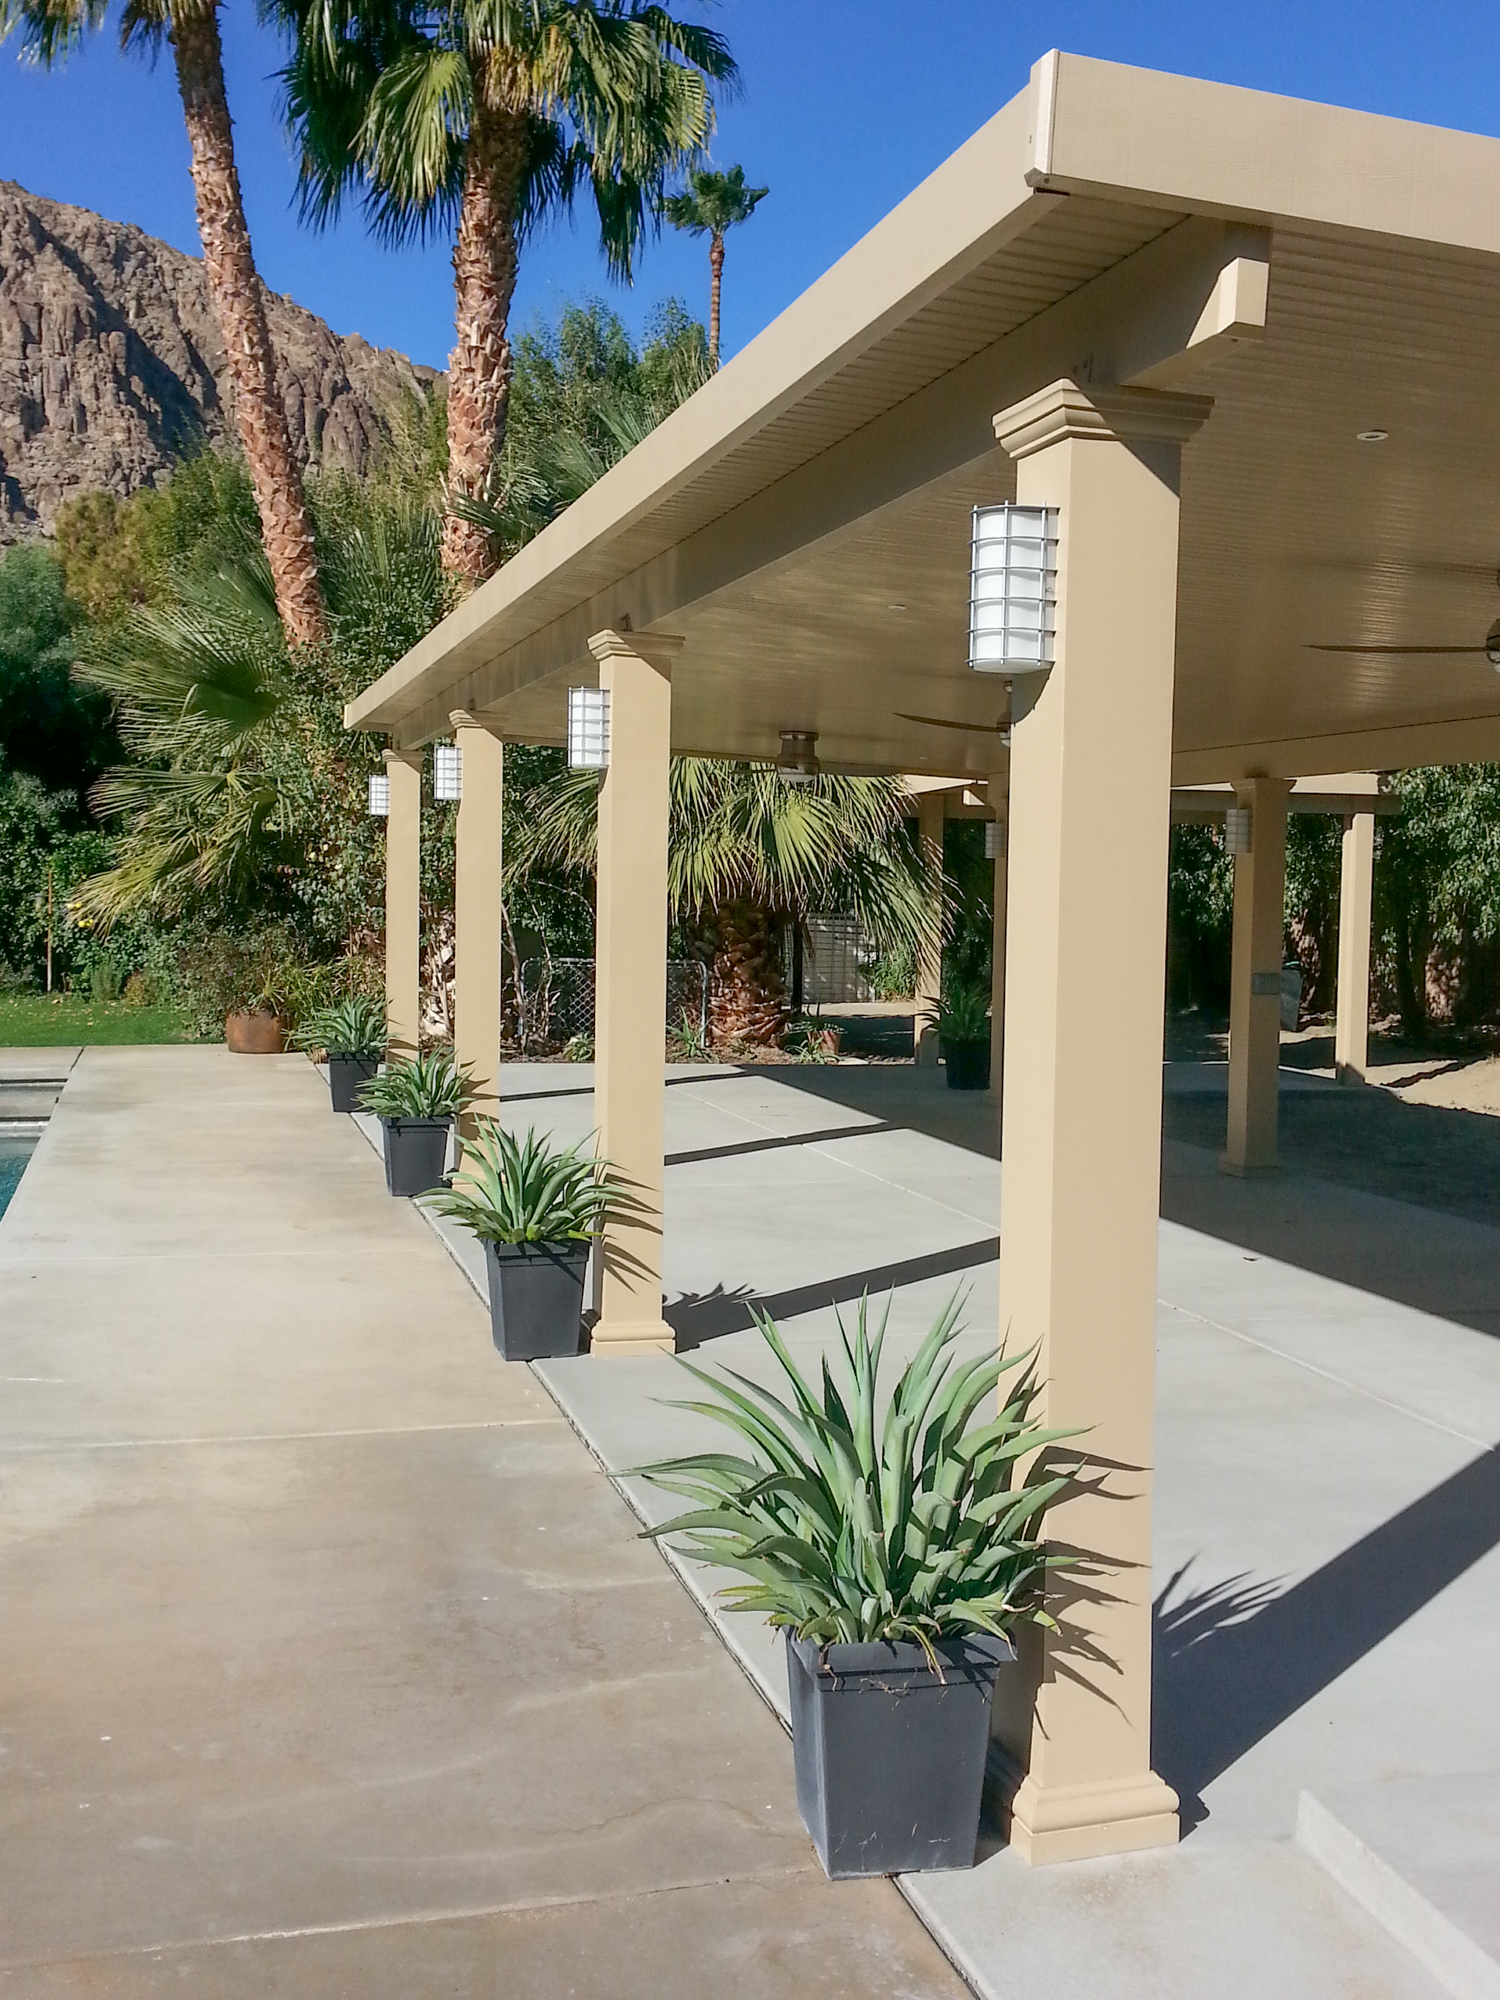 Patio Cover Designs| Patio Ideas | Valley Patios | Palm ... on Backyard Patio Cover Ideas  id=53785